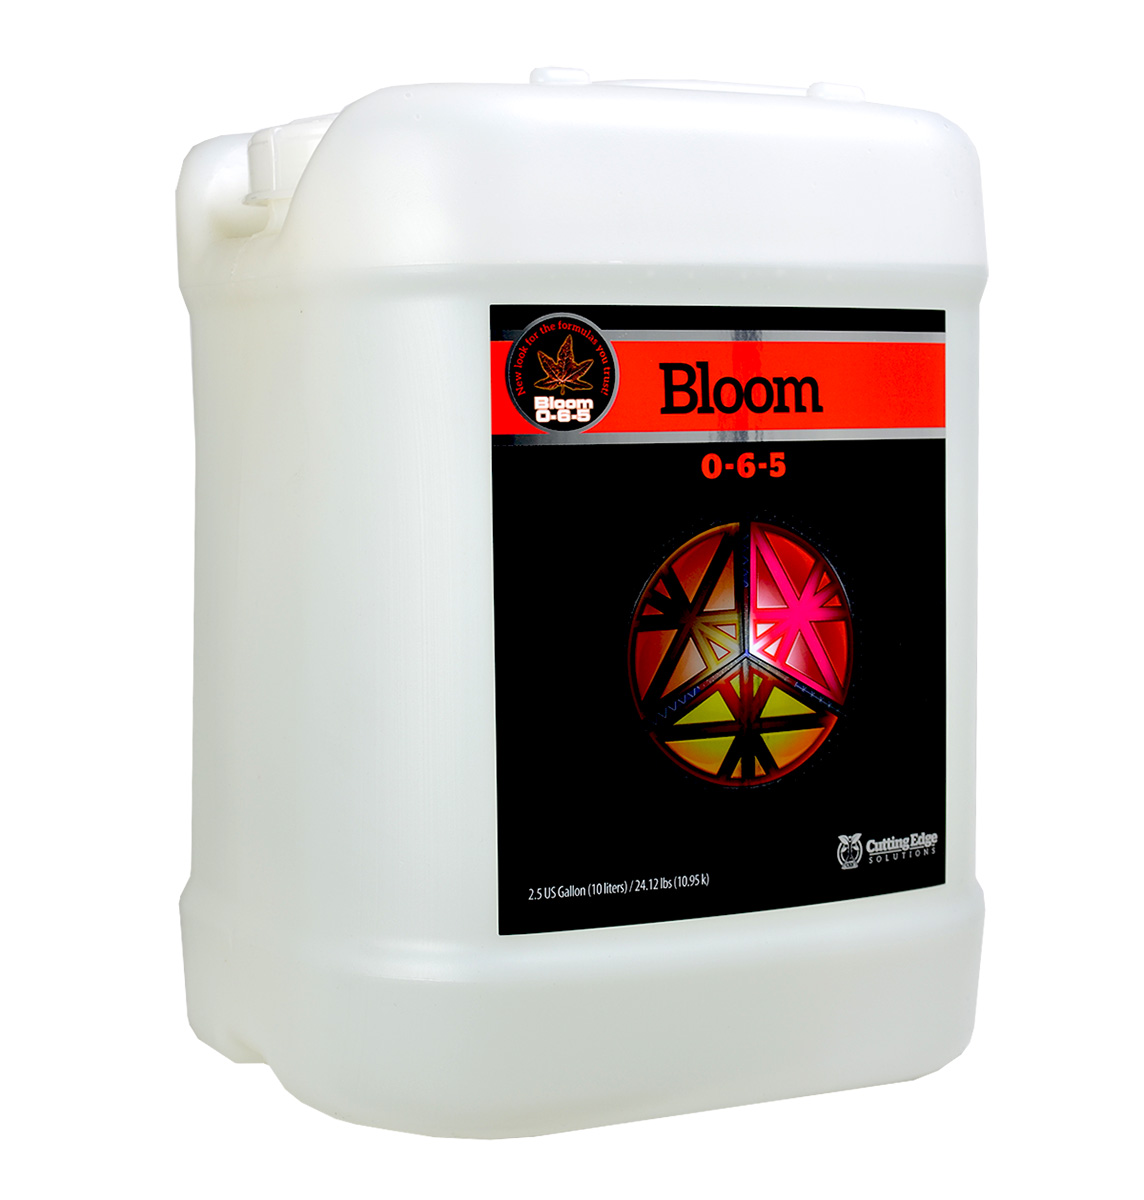 Cutting Edge Solutions Bloom 2.5 Gallon